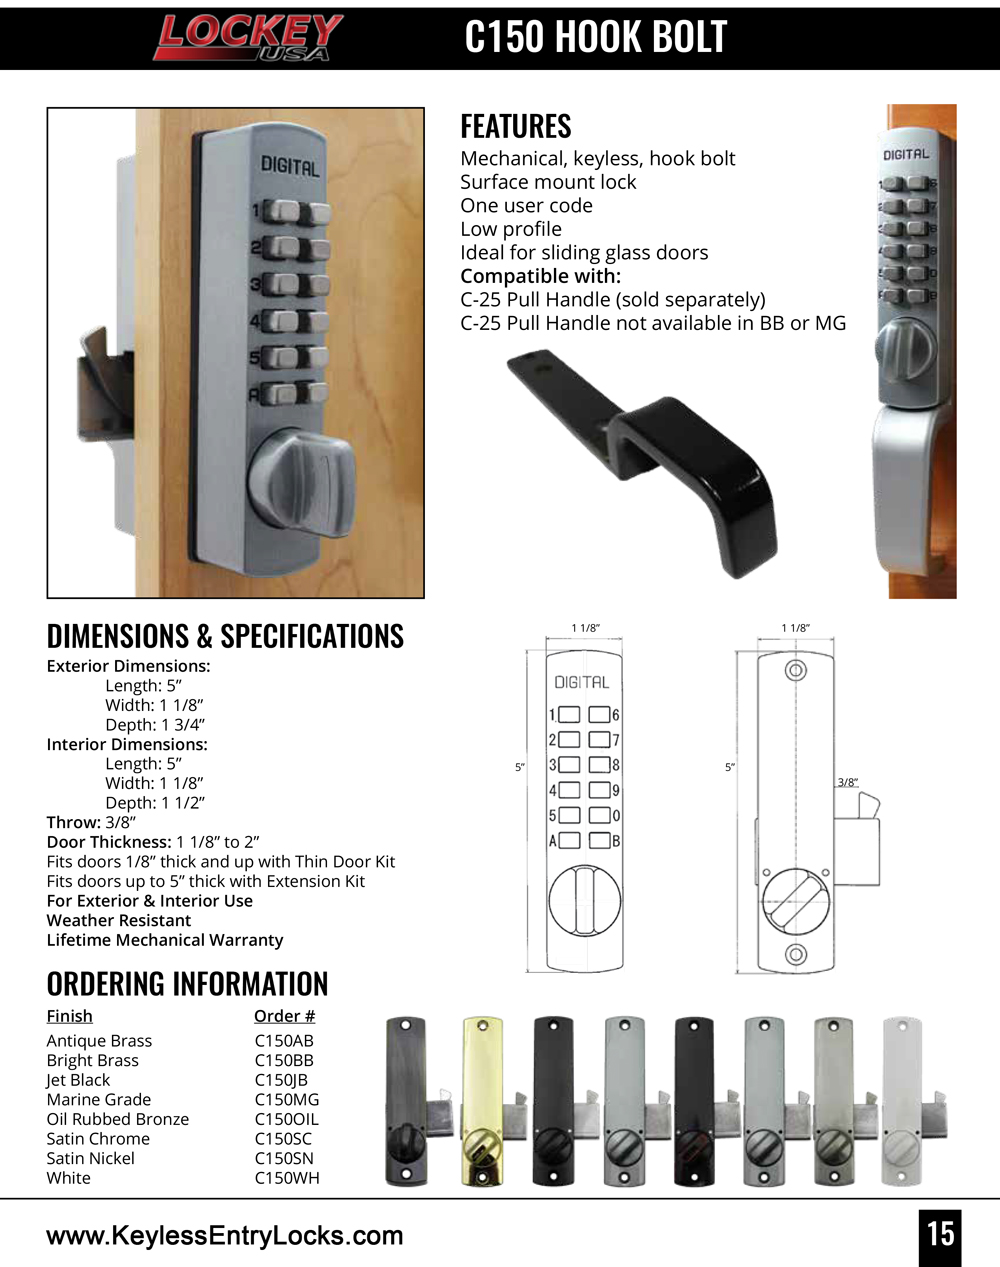 Lockey C150 Cabinet Hookbolt Lock Keypad Lock